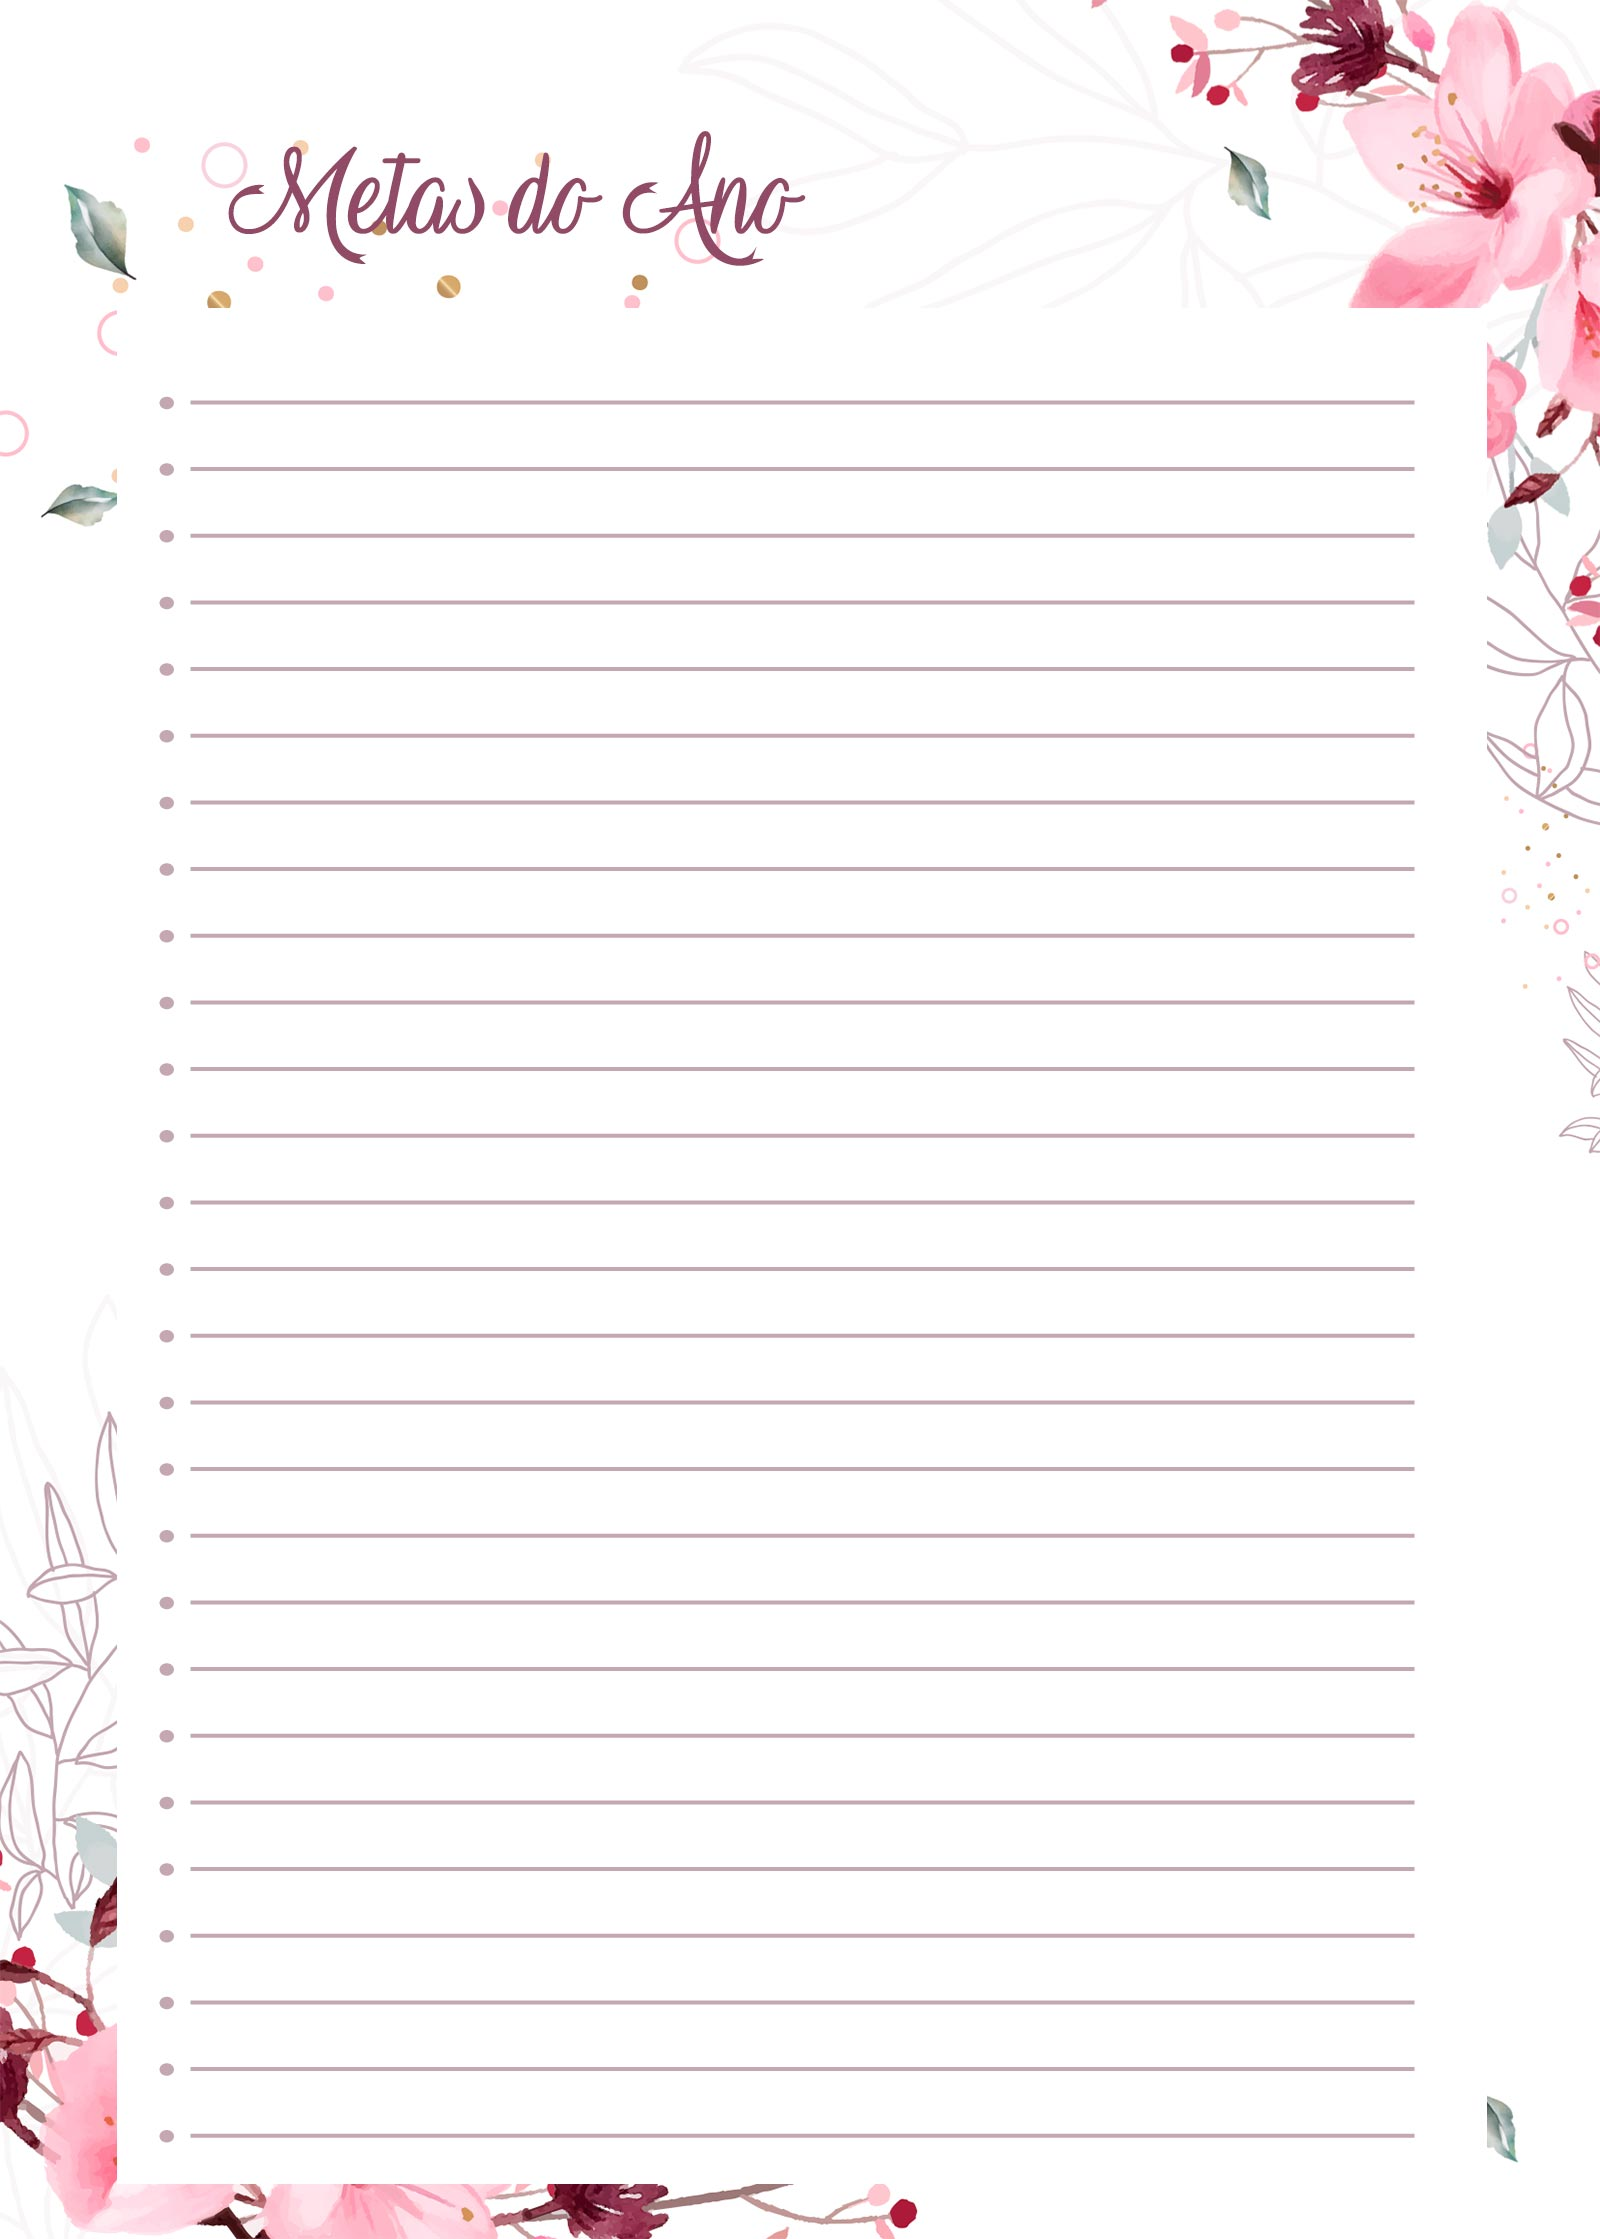 Planner Floral metas do ano